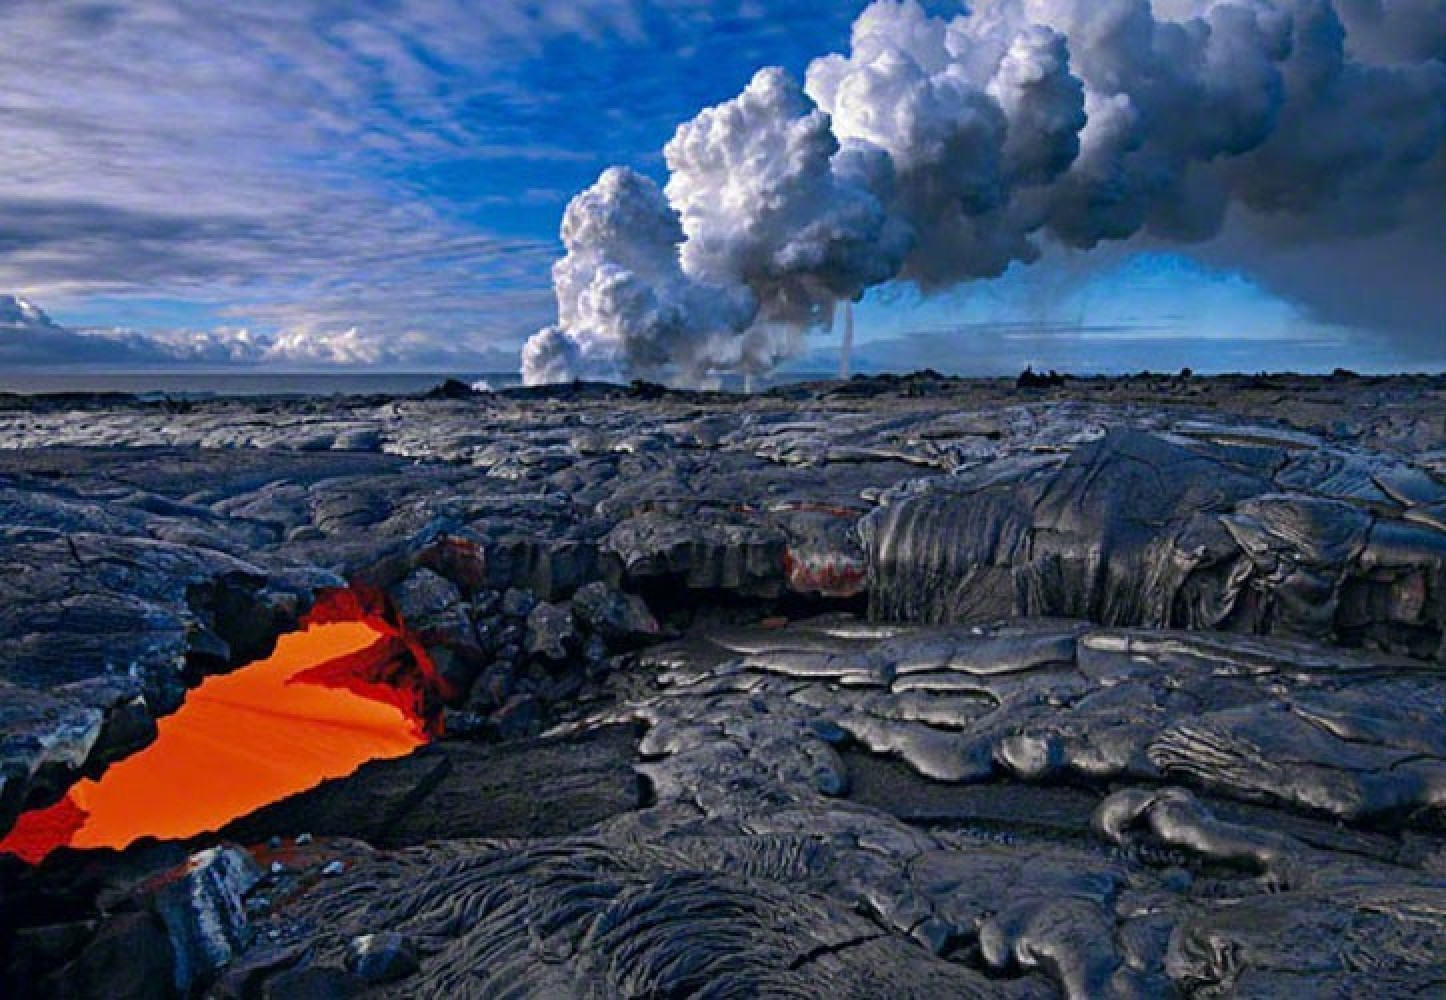 Evolution (Kilauea, The Big Island, Hawaii)